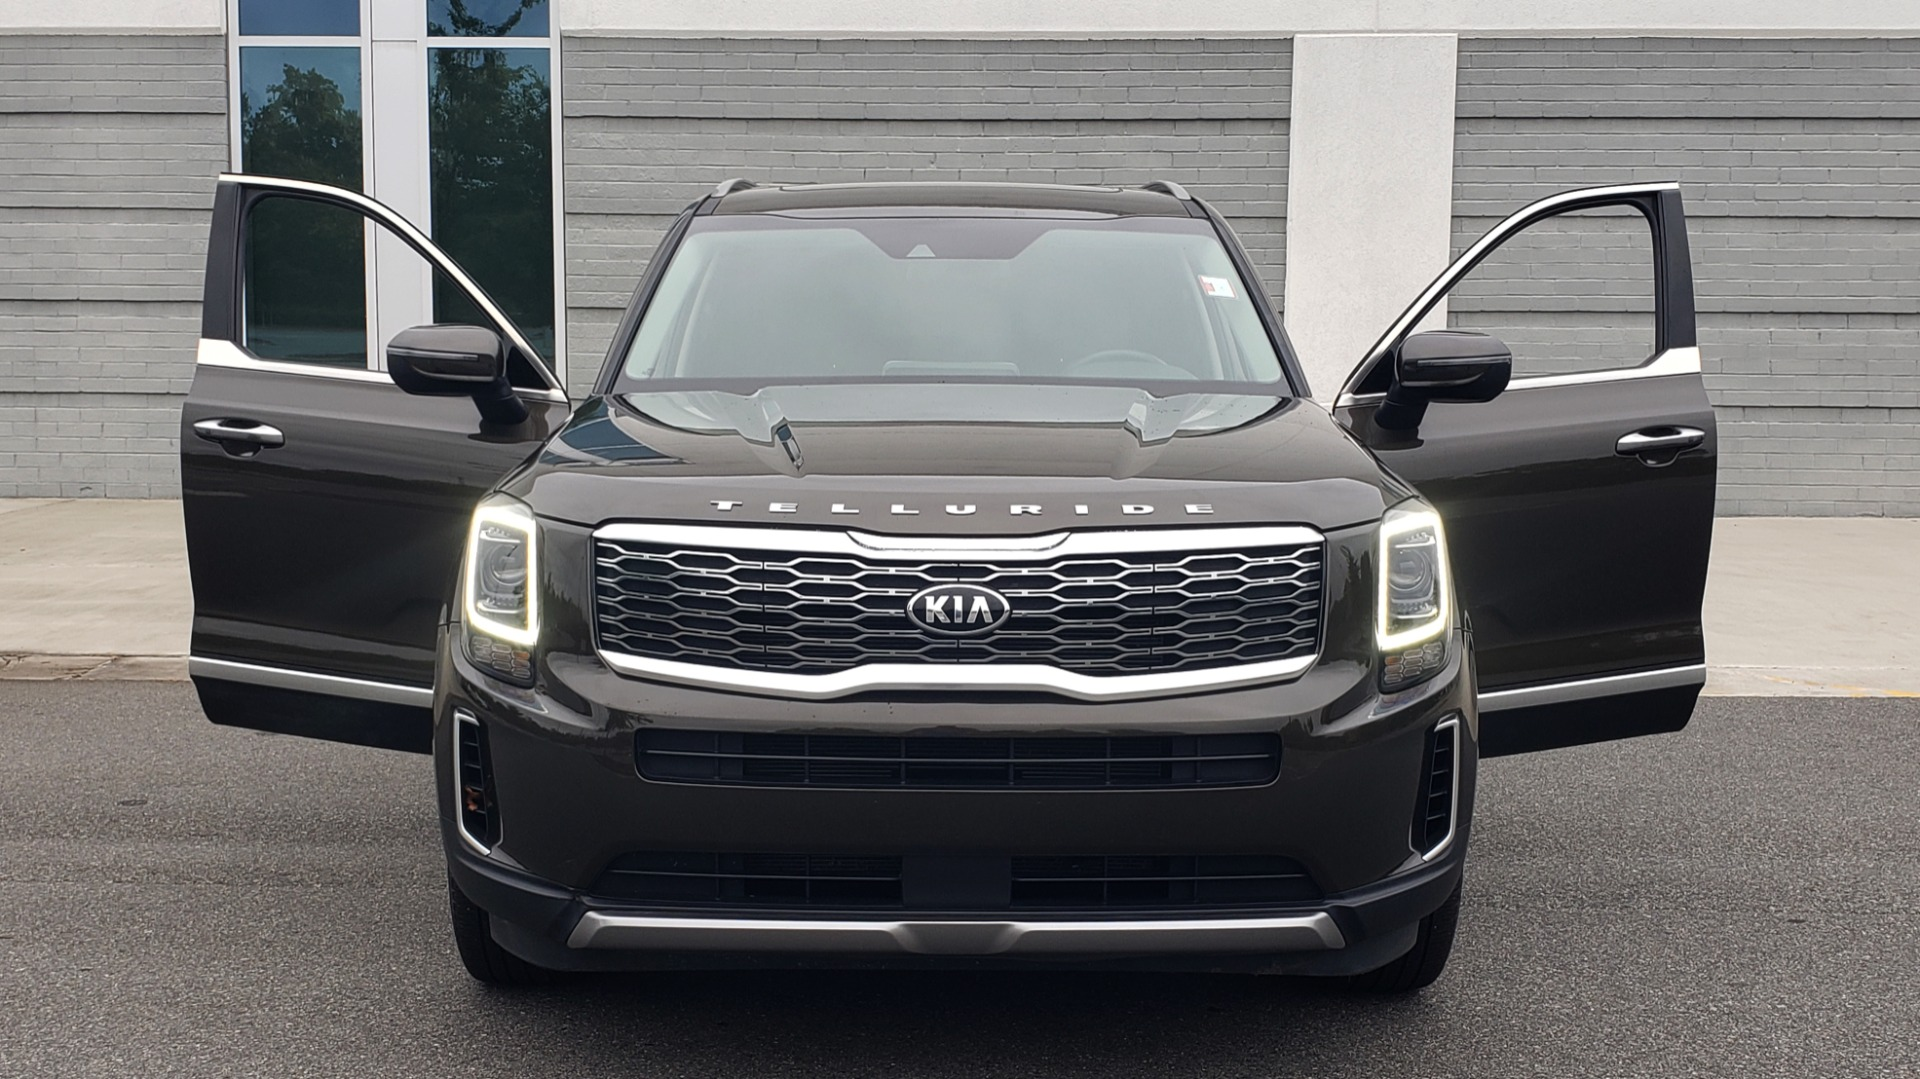 Used 2020 Kia TELLURIDE S 3.8L / FWD / 8-SPD AUTO / SUNROOF / REARVIEW / 20INCH WHEELS for sale $41,595 at Formula Imports in Charlotte NC 28227 24